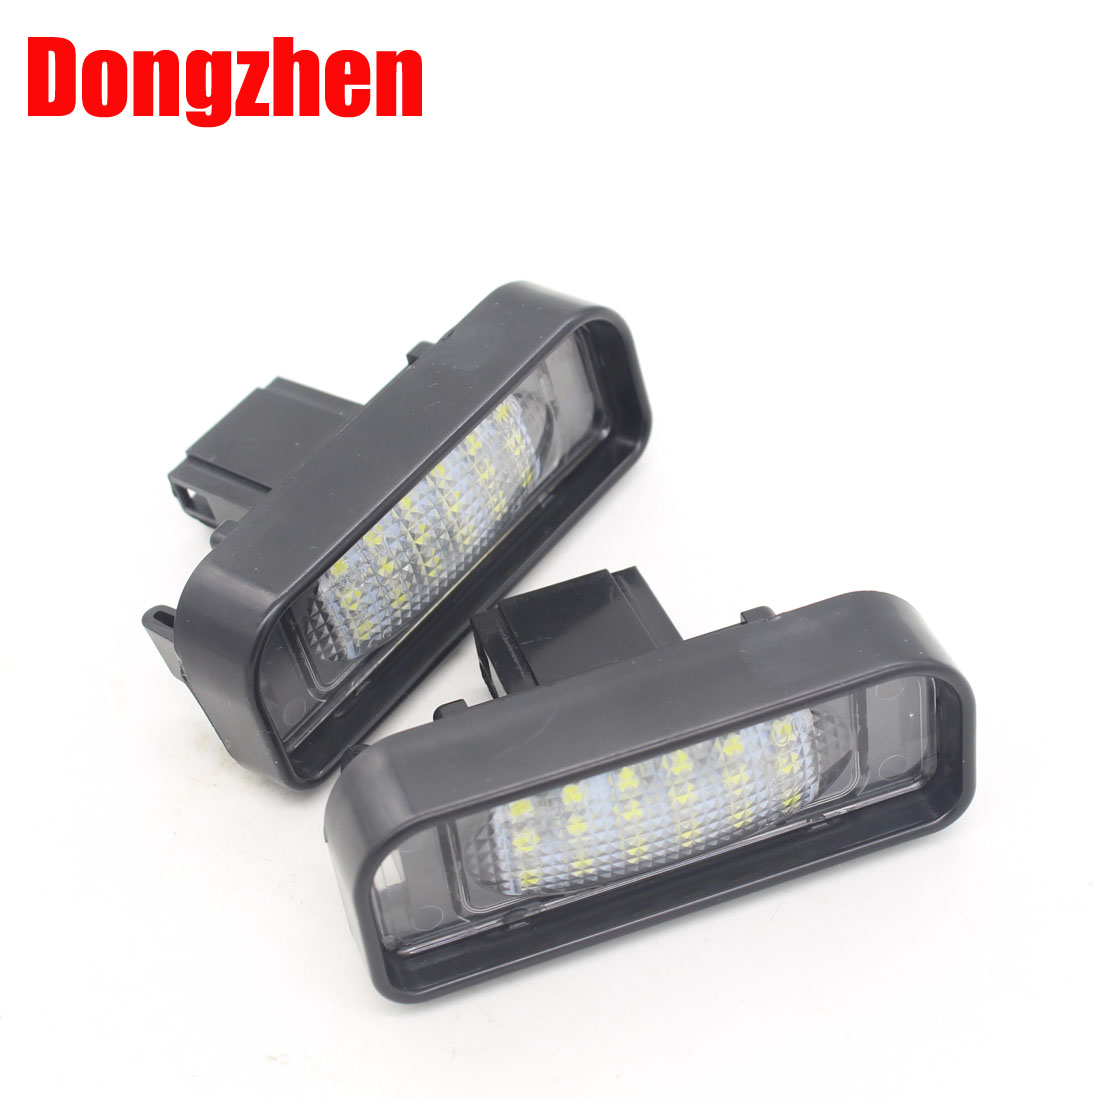 DongZhen Car Error Free 18LED 3528SMD License Plate Light Lamp Fit For Mercedes Benz S Class W220 Bright White 1999-2005<br><br>Aliexpress